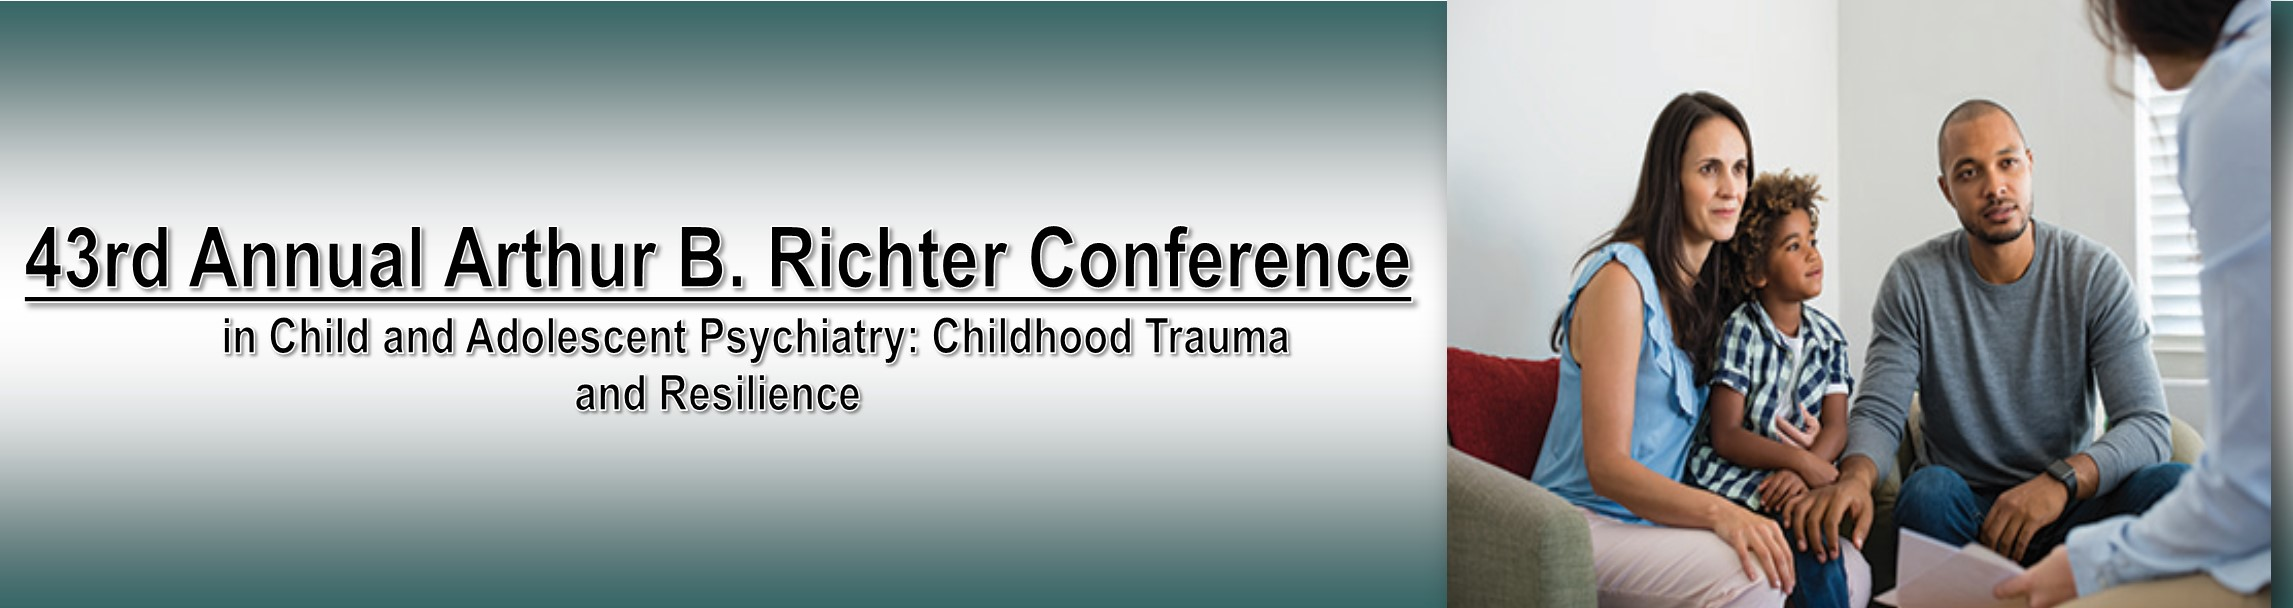 43rd Annual Arthur B. Richter Conference in Child and Adolescent Psychiatry: Childhood Trauma and Resilience Banner